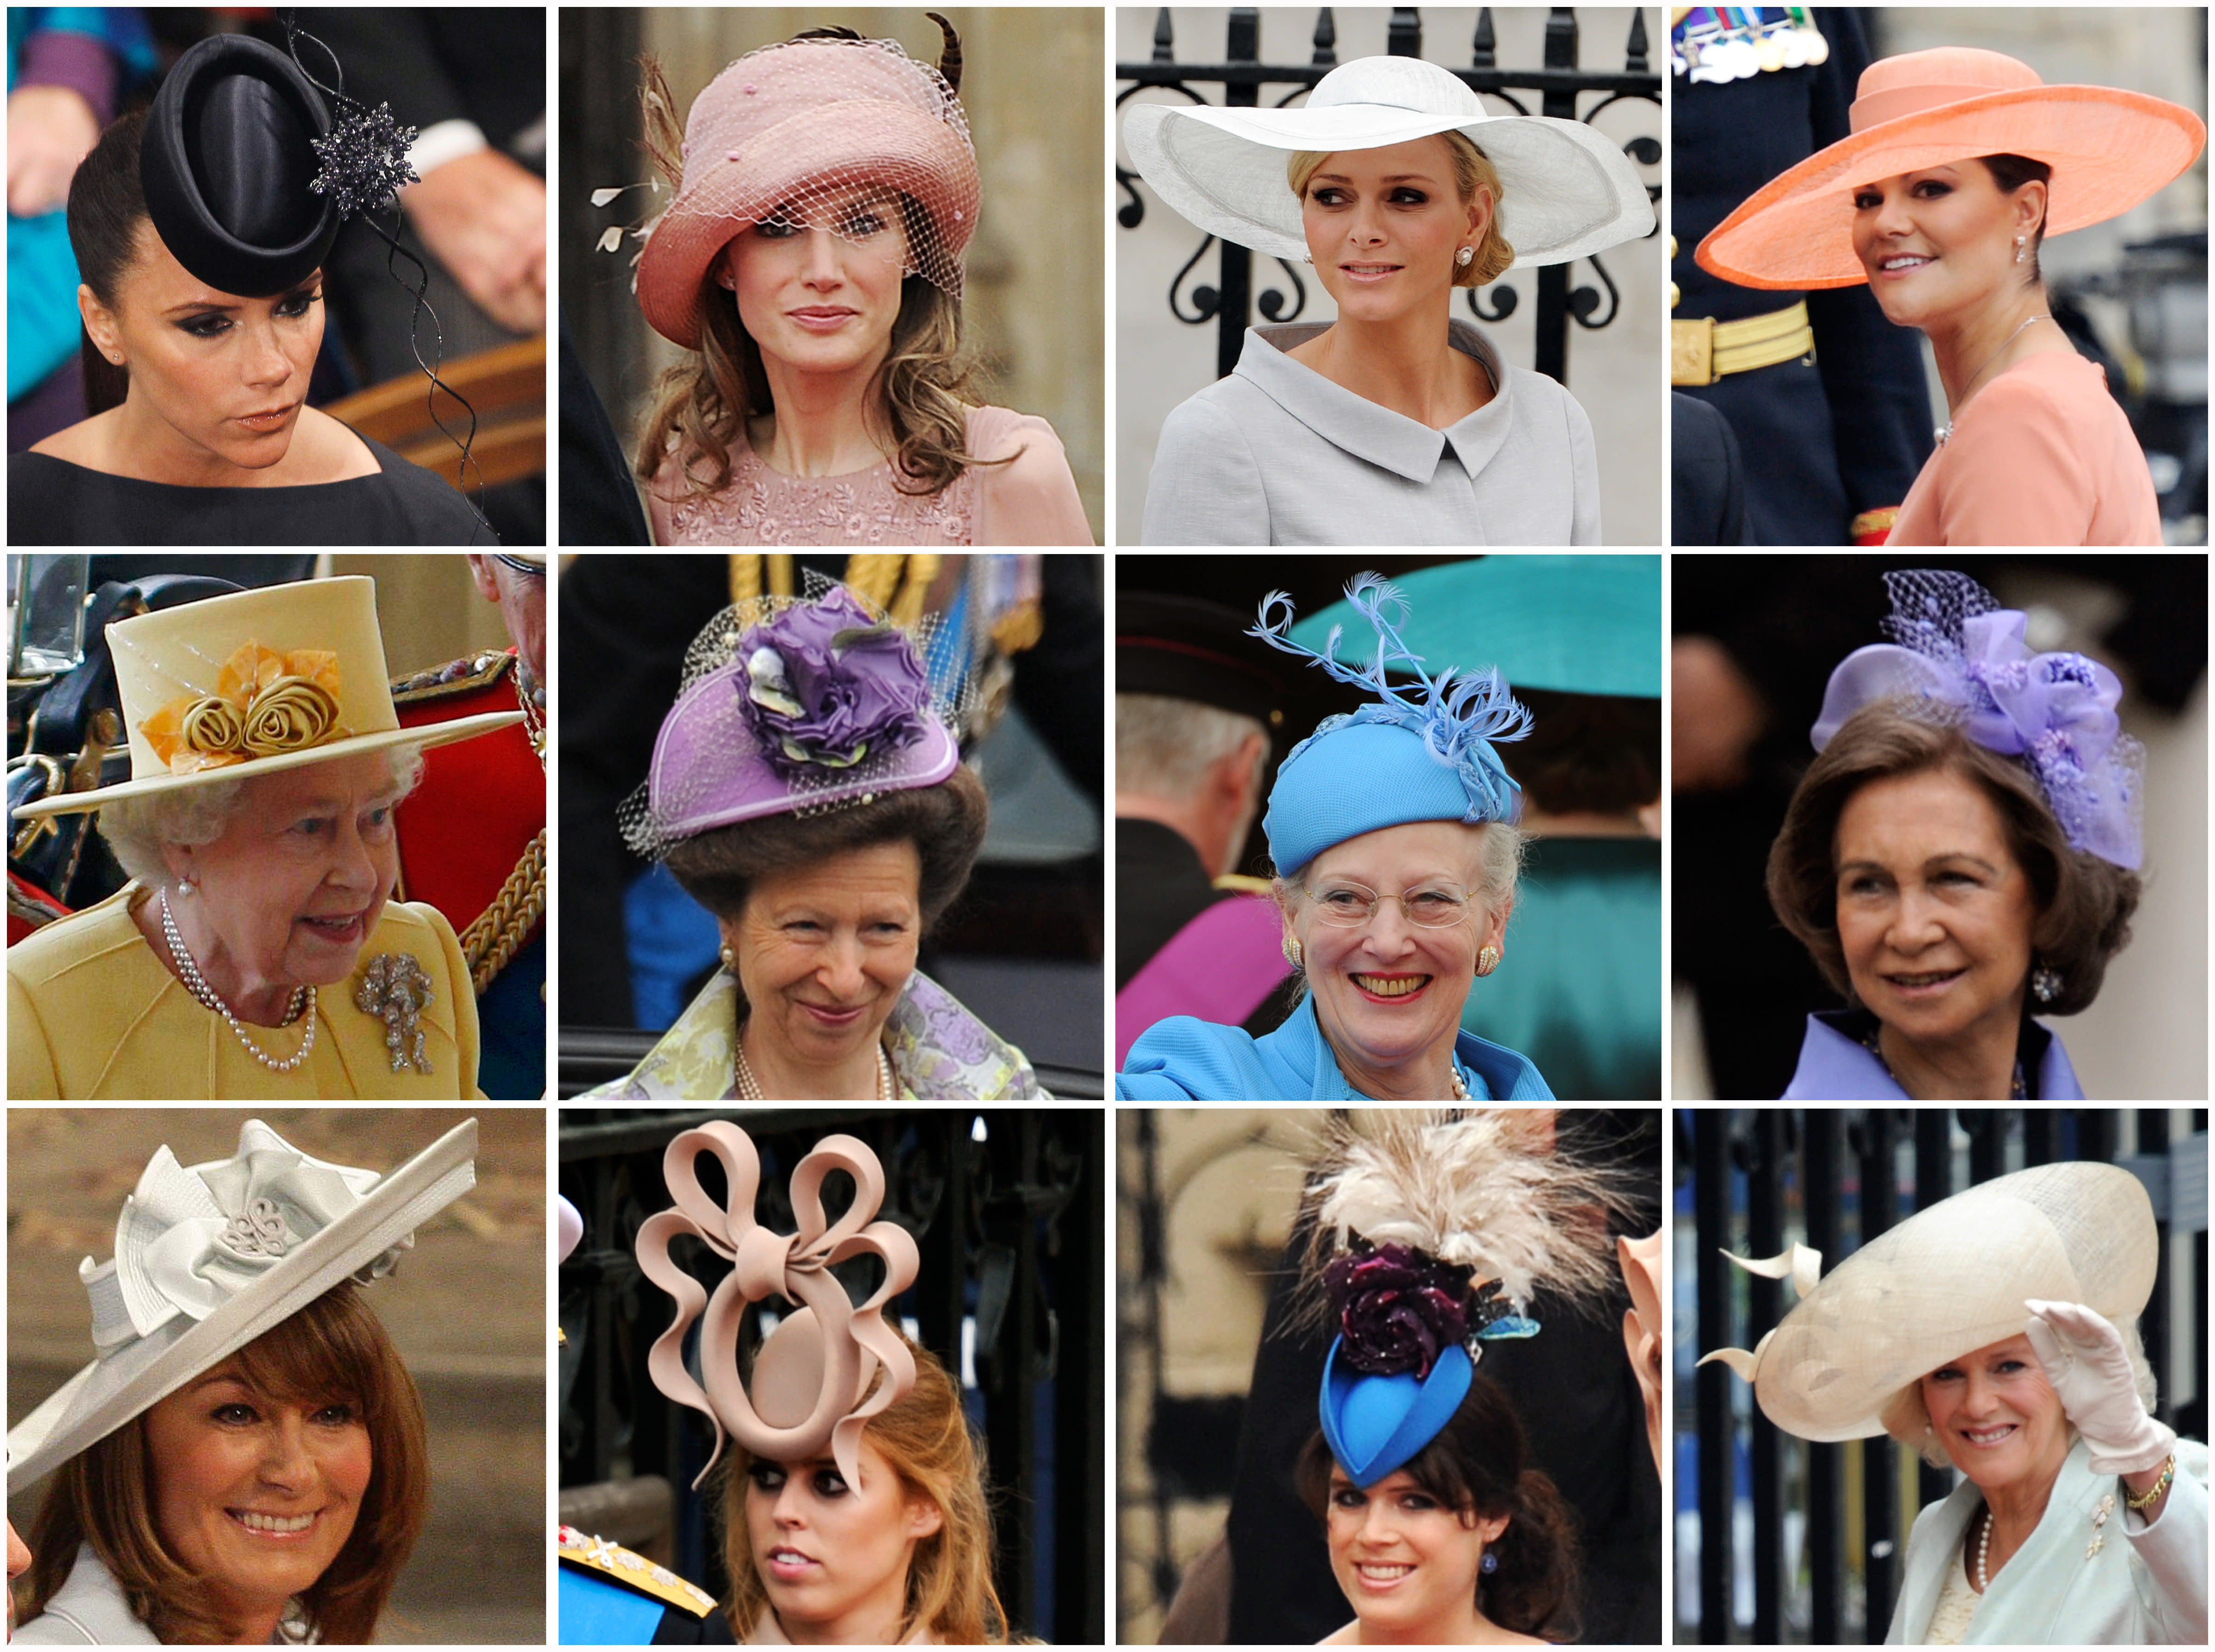 Some of the manyfancy hats and fascinators worn at the royal wedding in 2011. (AFP via Getty Images)